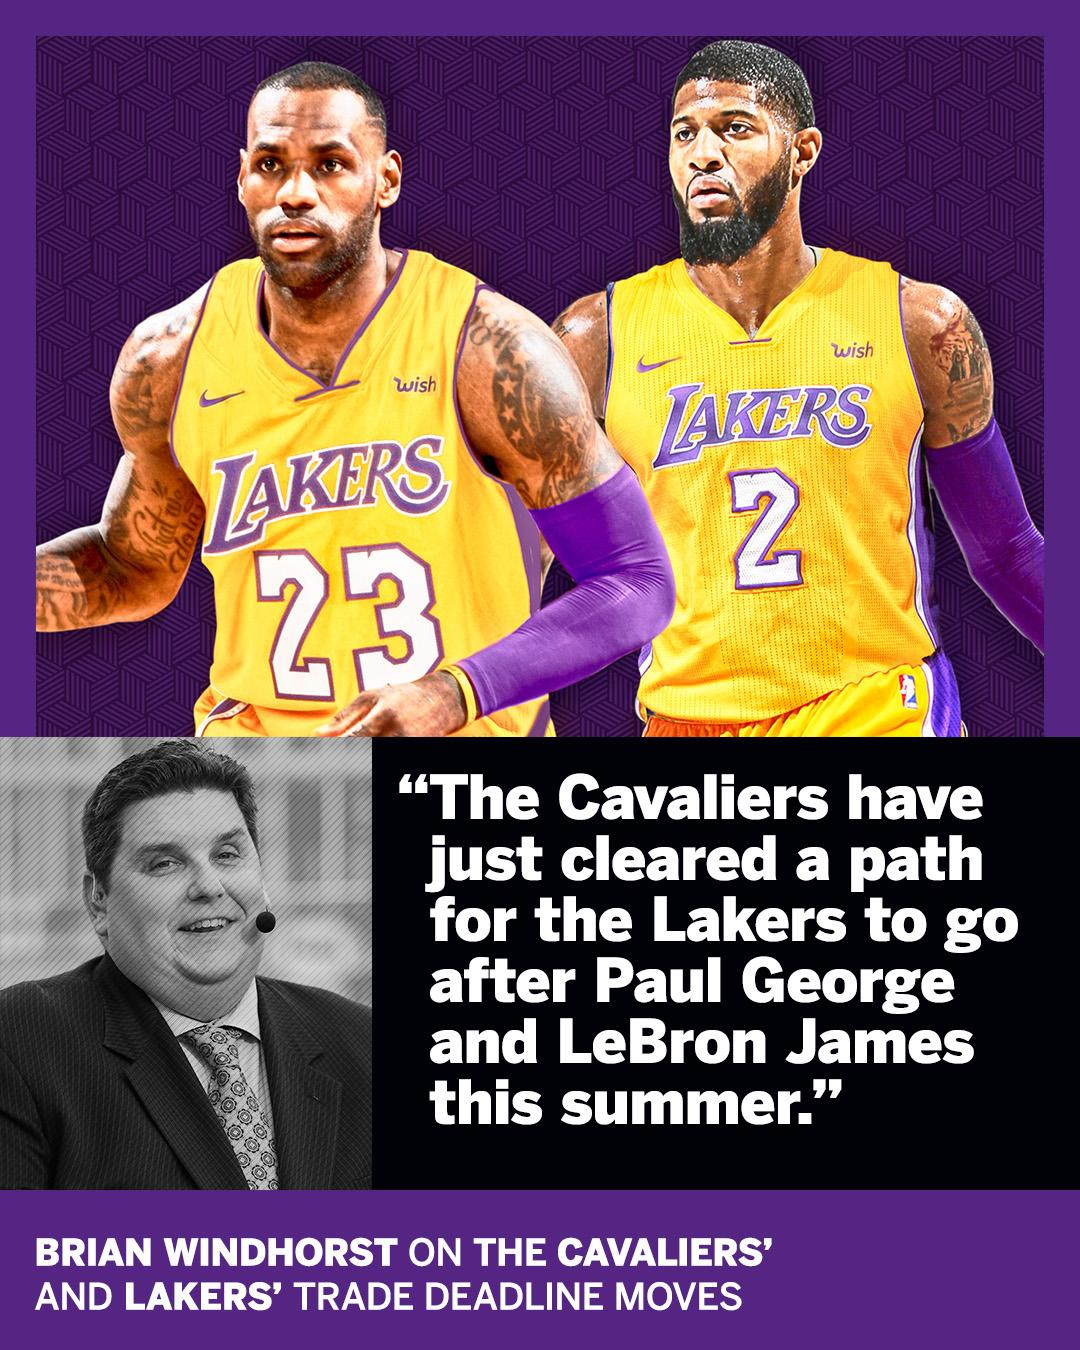 .@WindhorstESPN thinks these moves are the foundation for LBJ and PG13. https://t.co/HpctSVfkUt